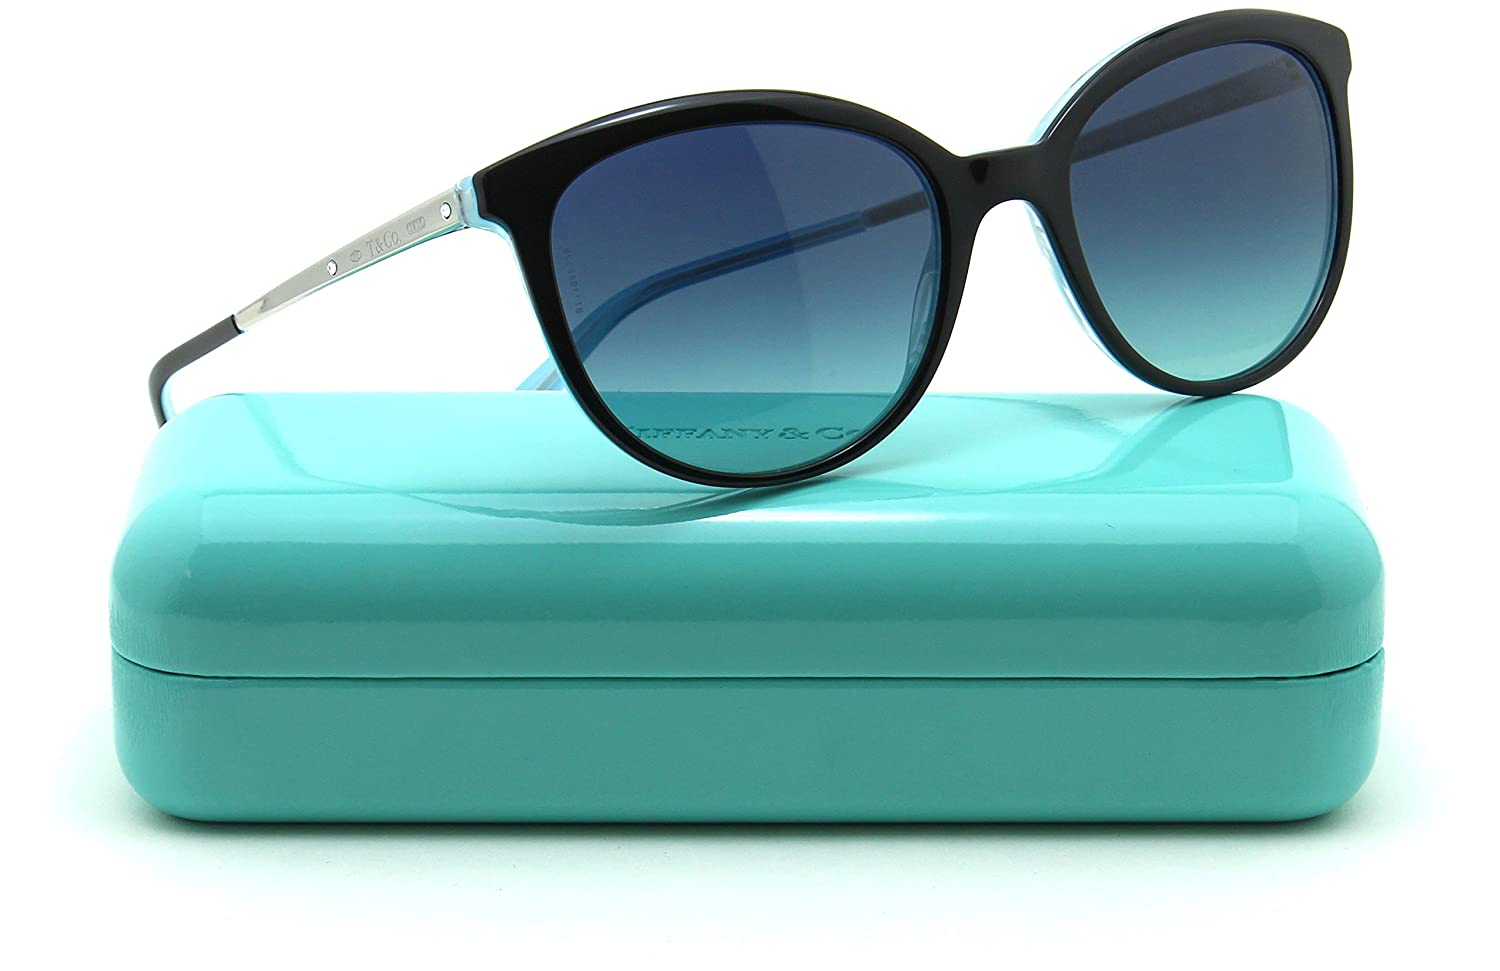 dba53af015 Tiffany   Co. TF 4117B Women Sunglasses Azure Blue Gradient 81939S   Amazon.in  Clothing   Accessories